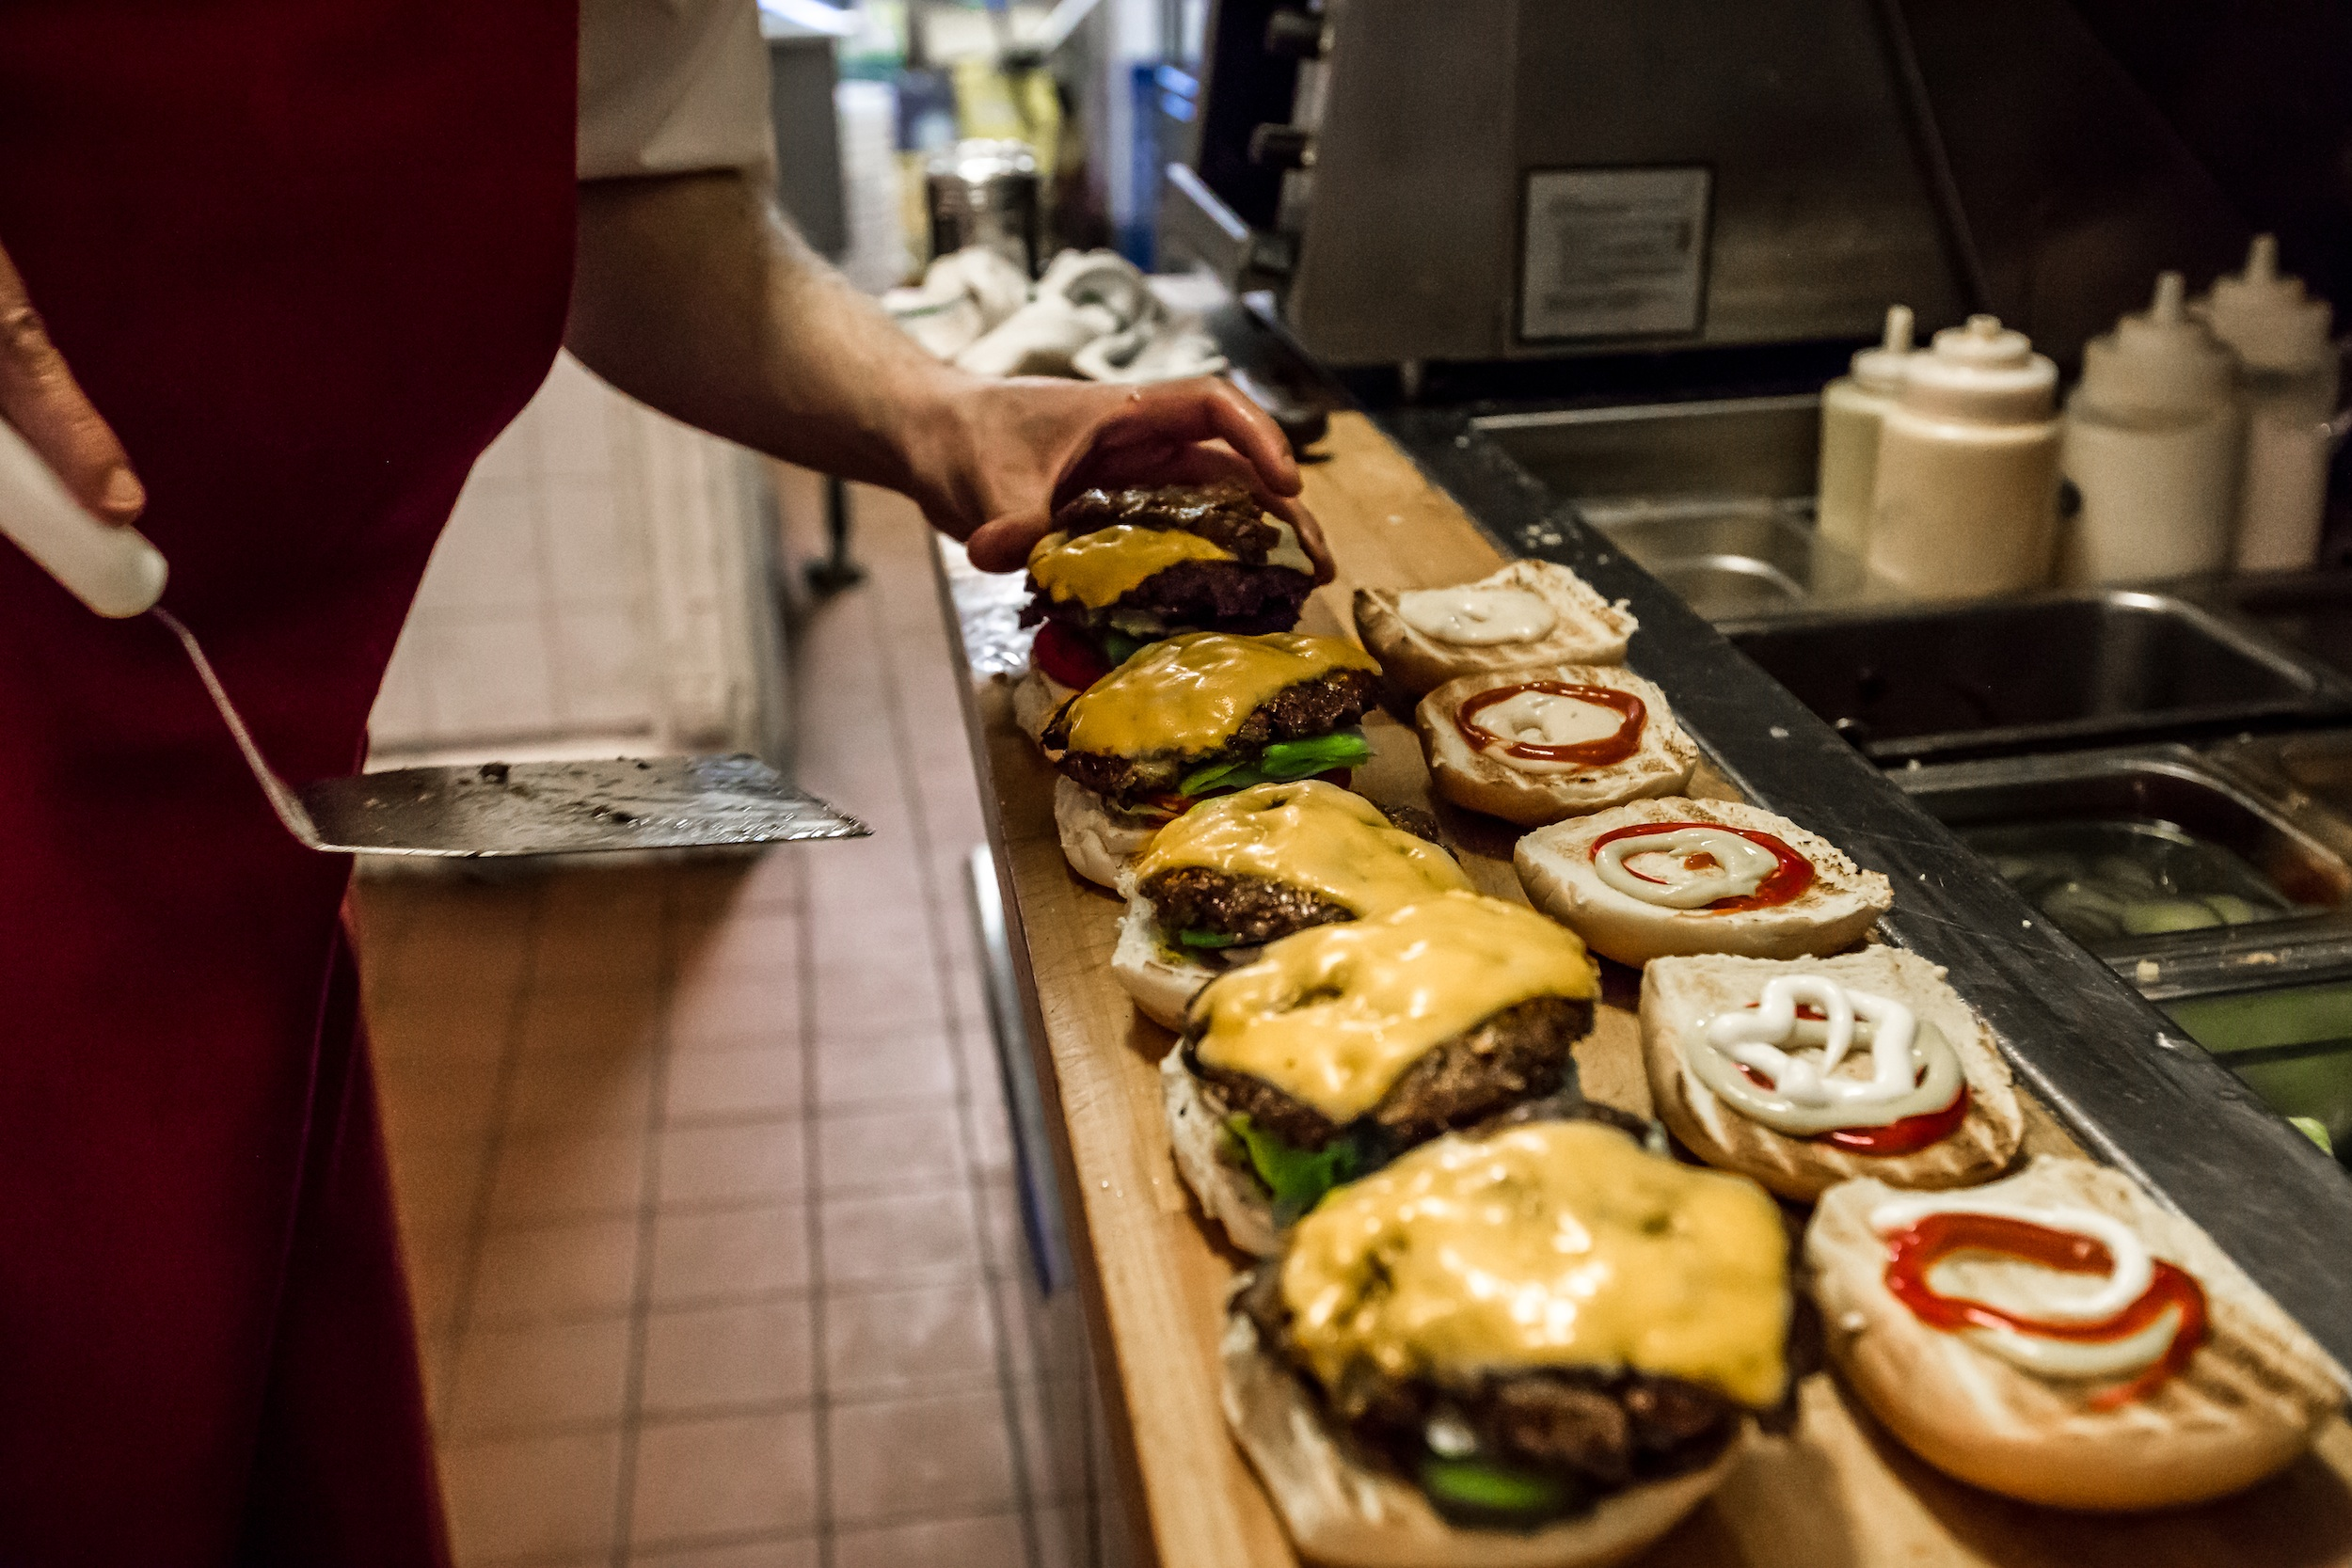 Burgers for a good cause